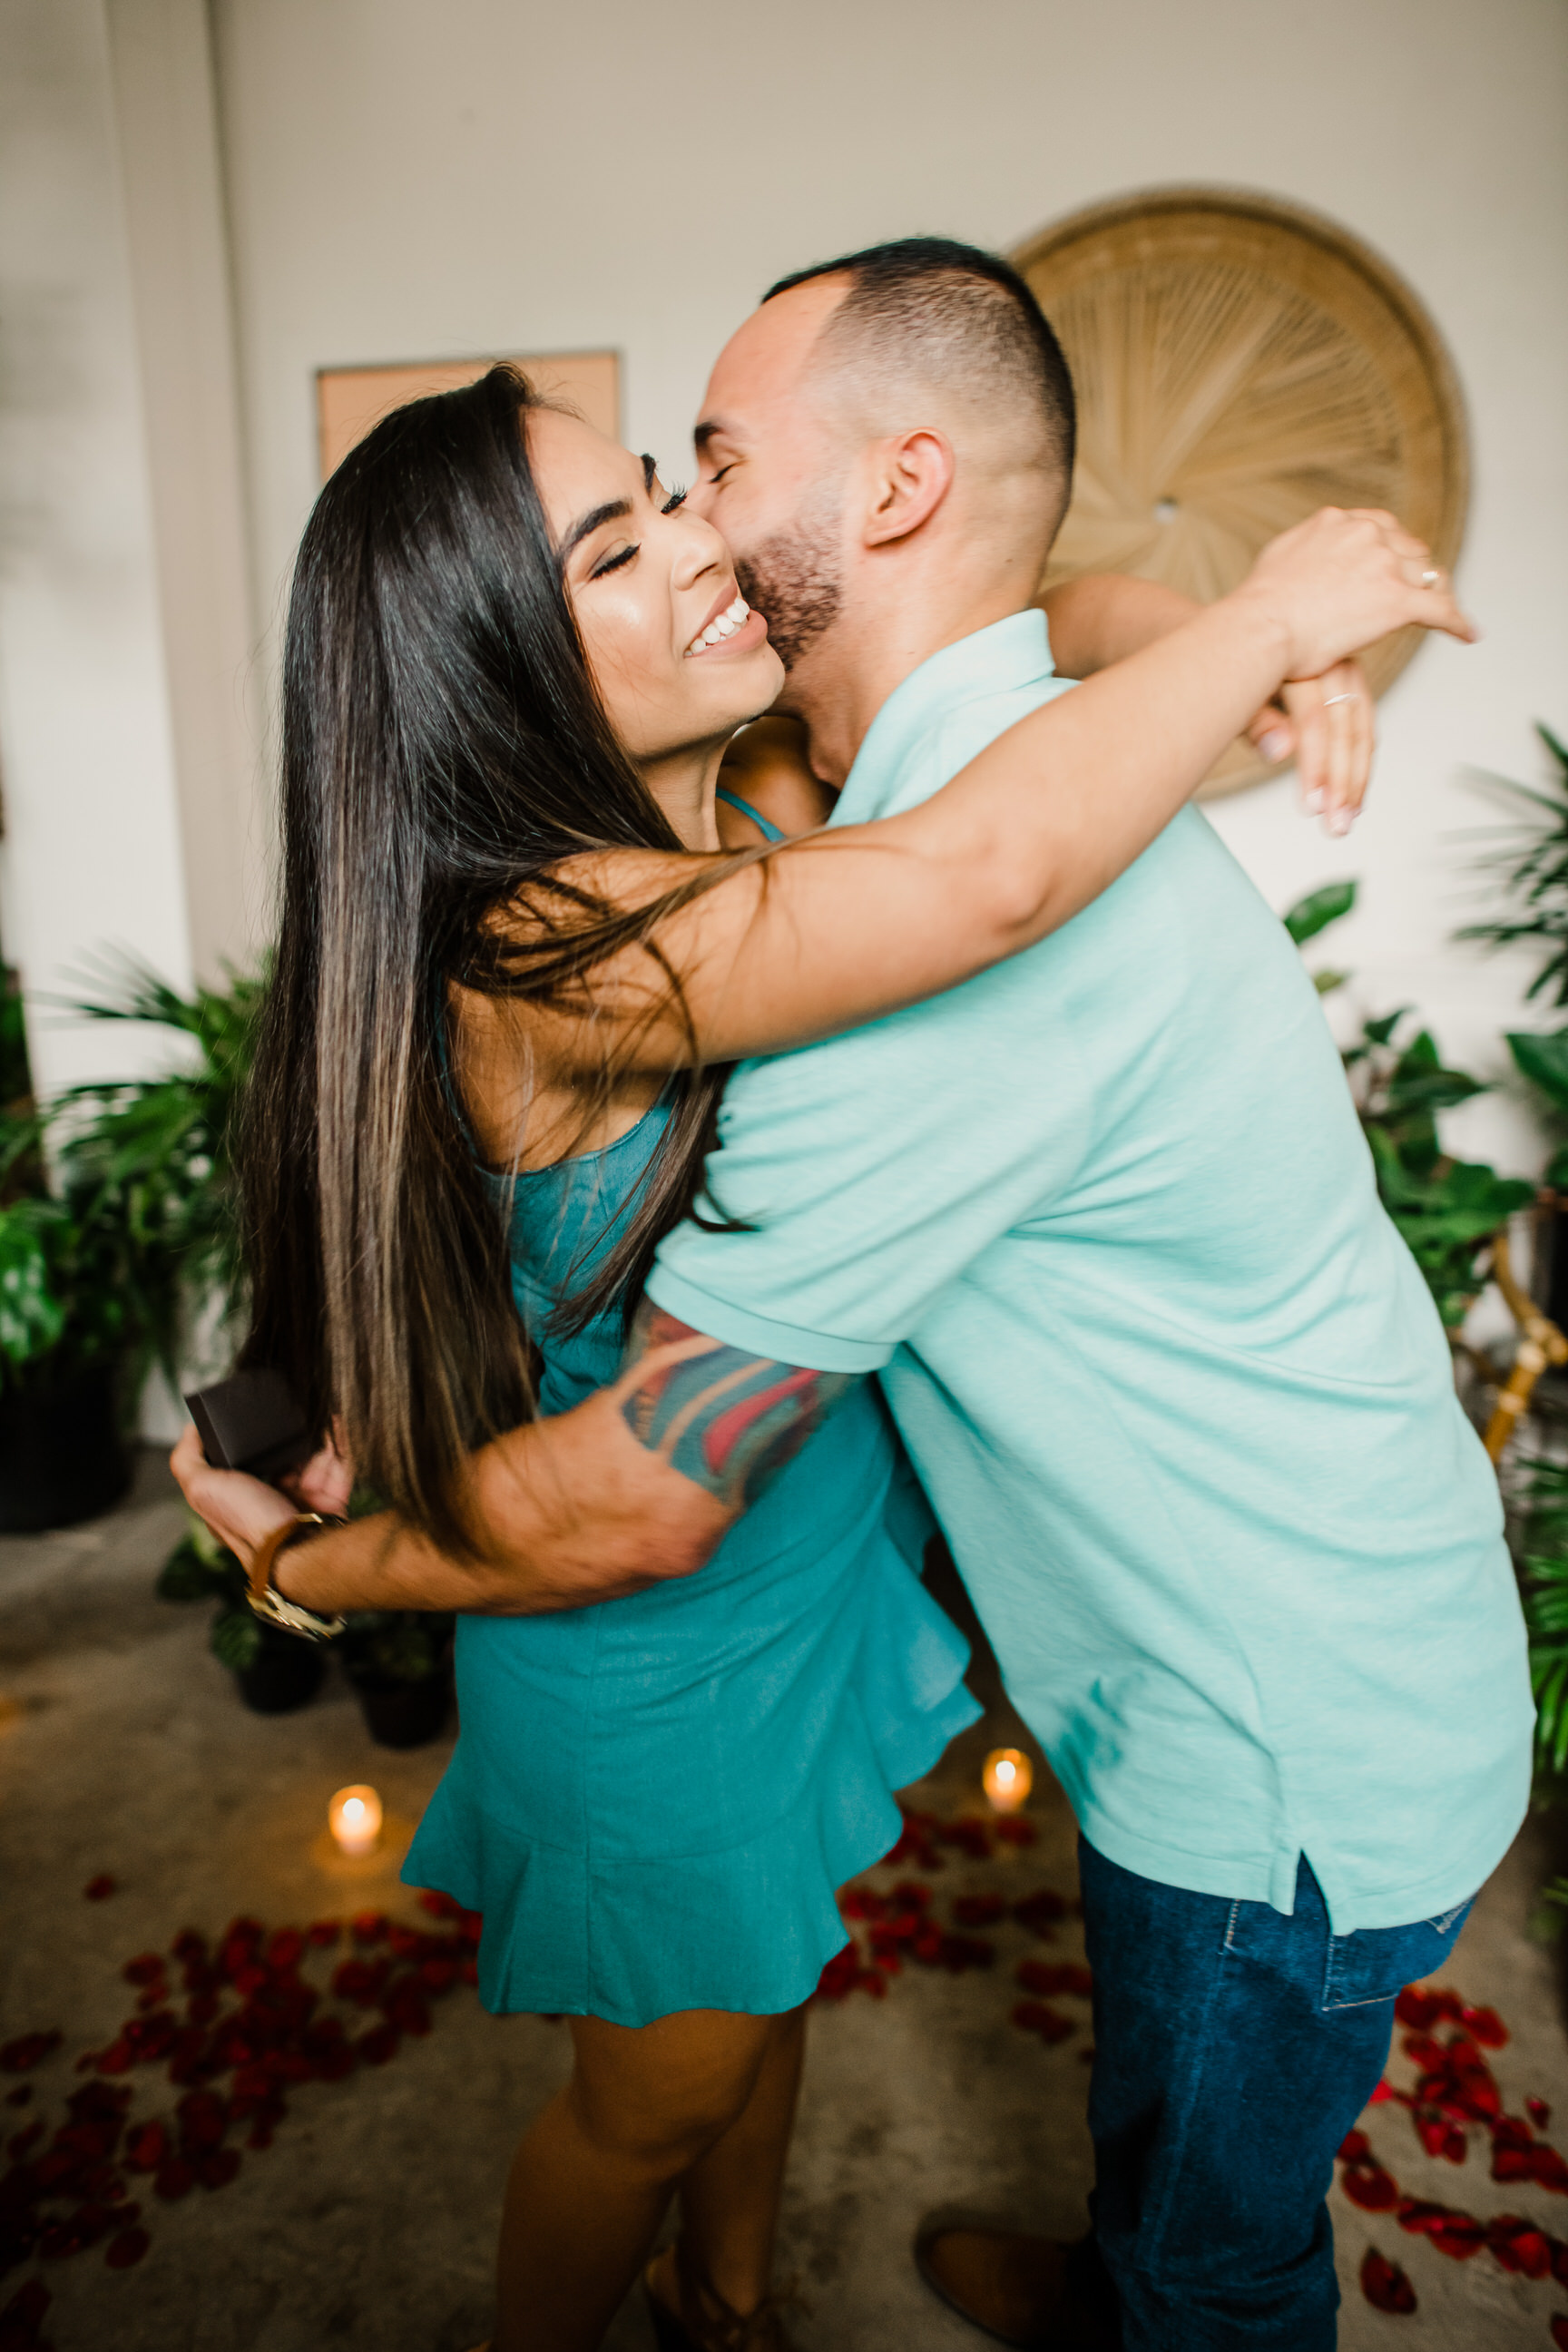 Valeria-Jonathan-Fancy-Free-Nursery-Tampa-Florida-Proposal-78.jpg